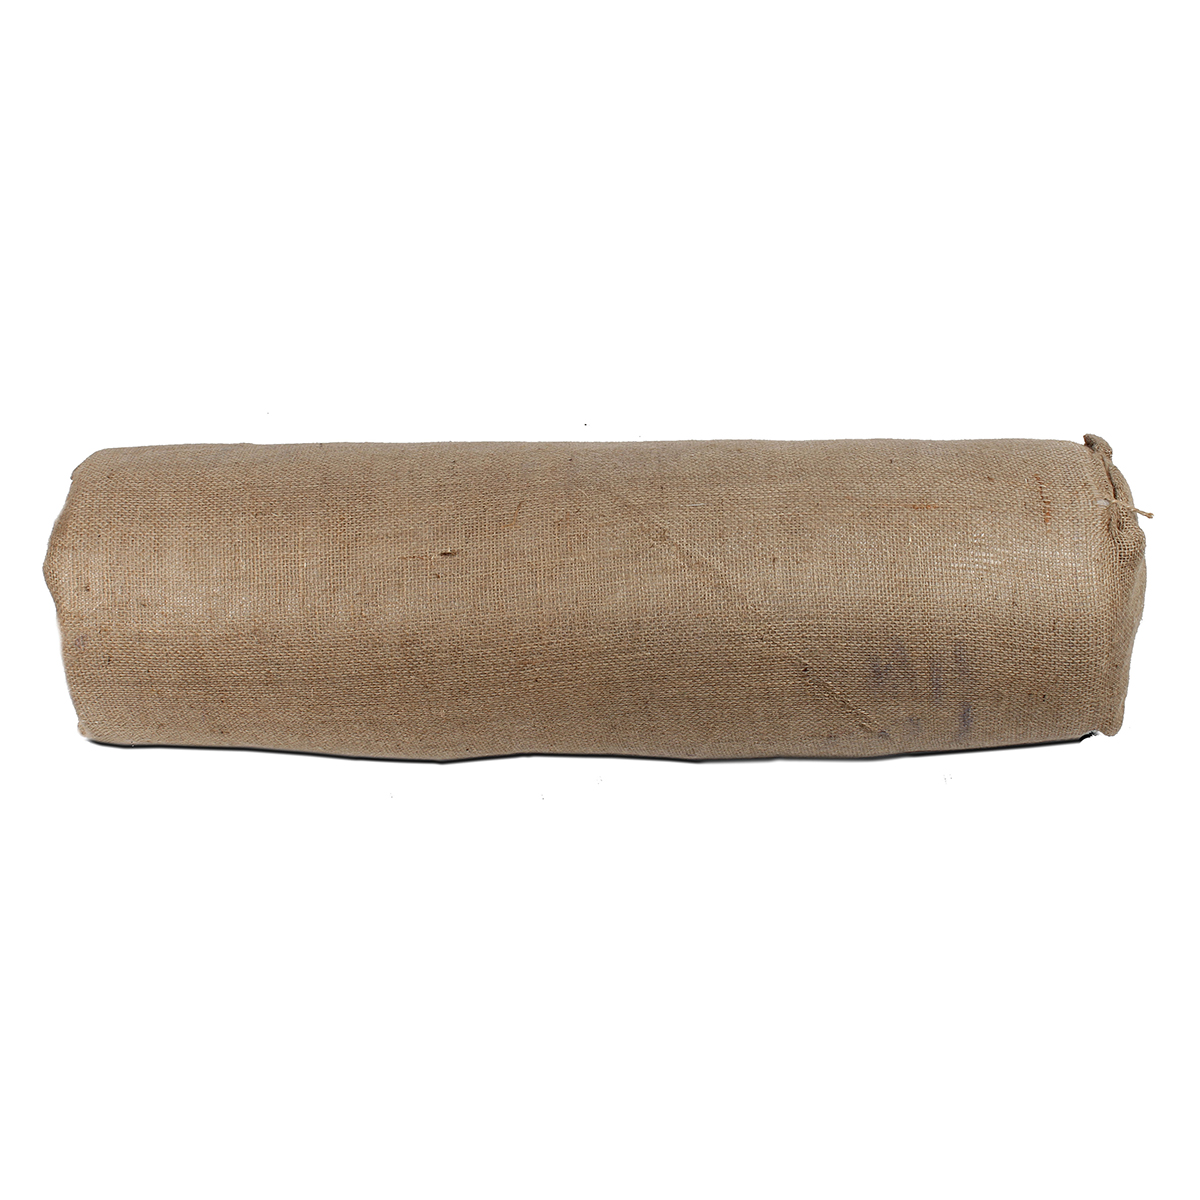 78001 Hessian Roll